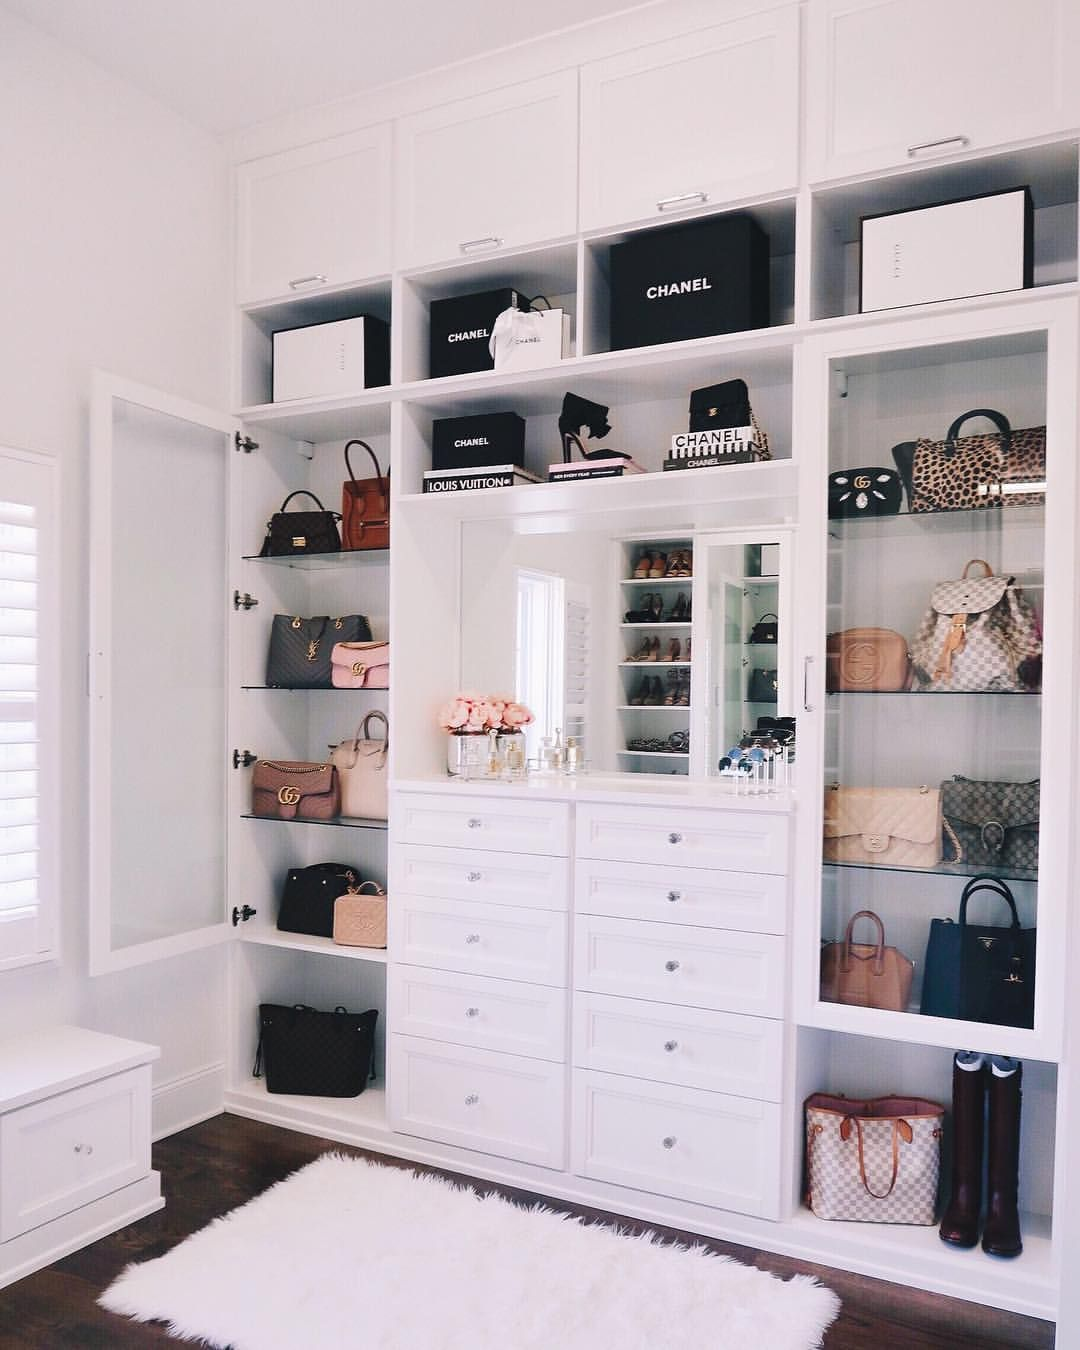 4,687 Likes, 46 Comments - #LTKhome (@liketoknow.it.home ...